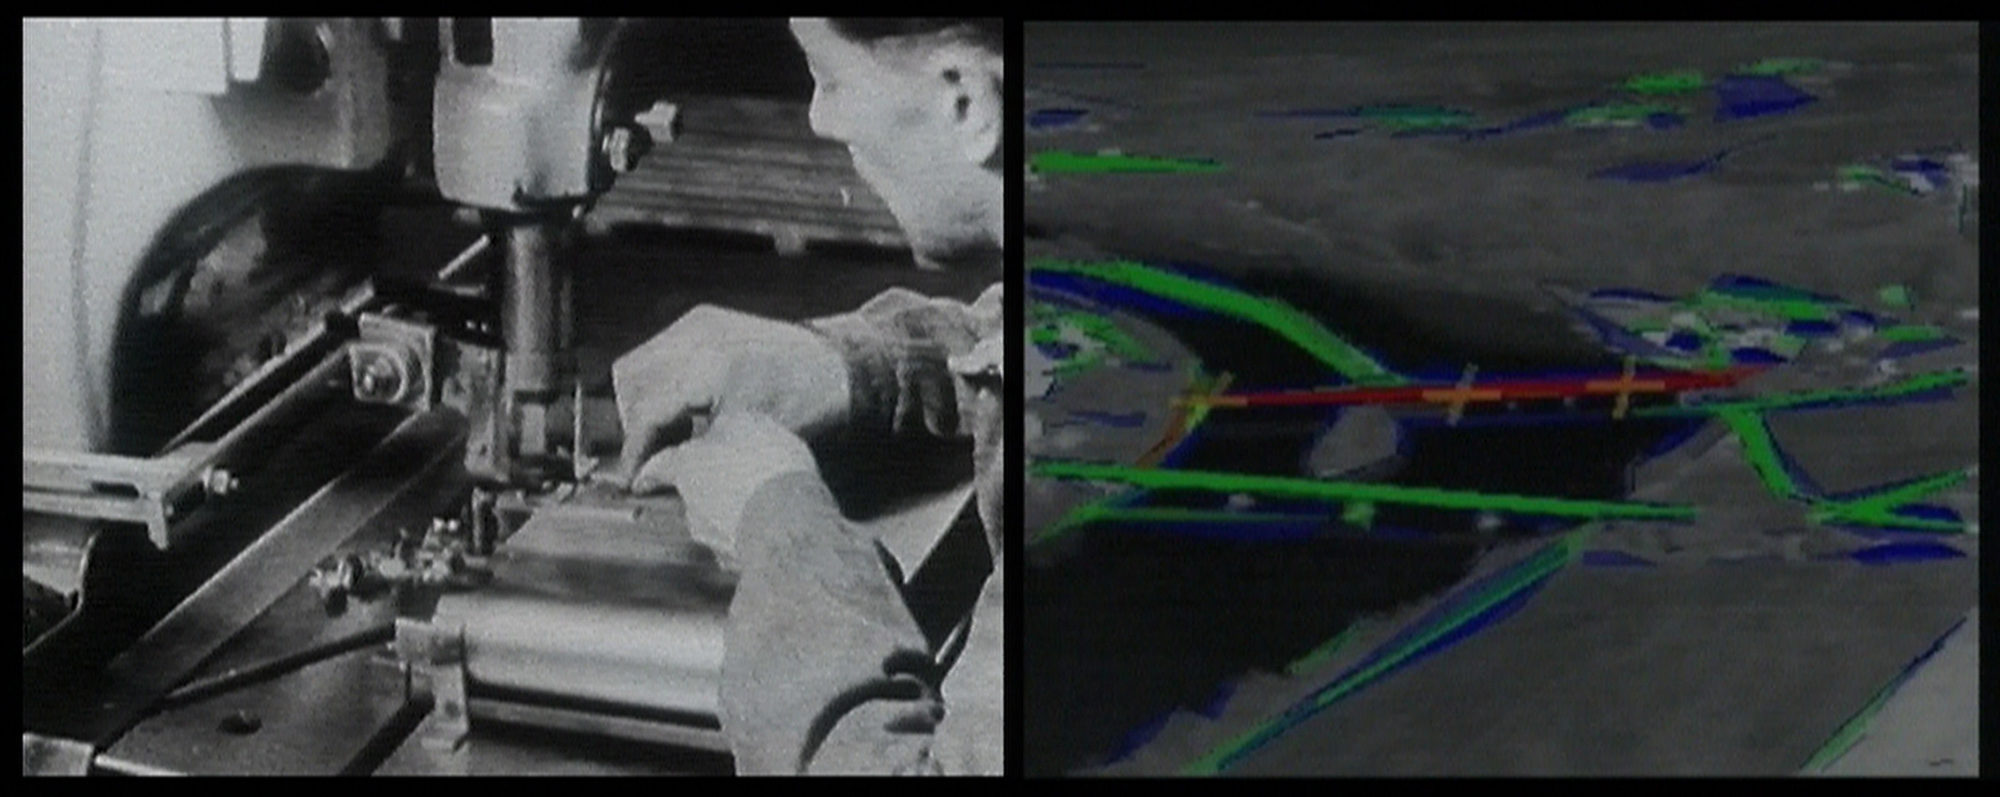 Harun Farocki.  Eye/Machine I . 2001. Two-channel video installation re-edited to single-channel video (color, sound). 23 minutes. Committee on Film Funds. © 2019 Harun Farocki Filmproduktion.